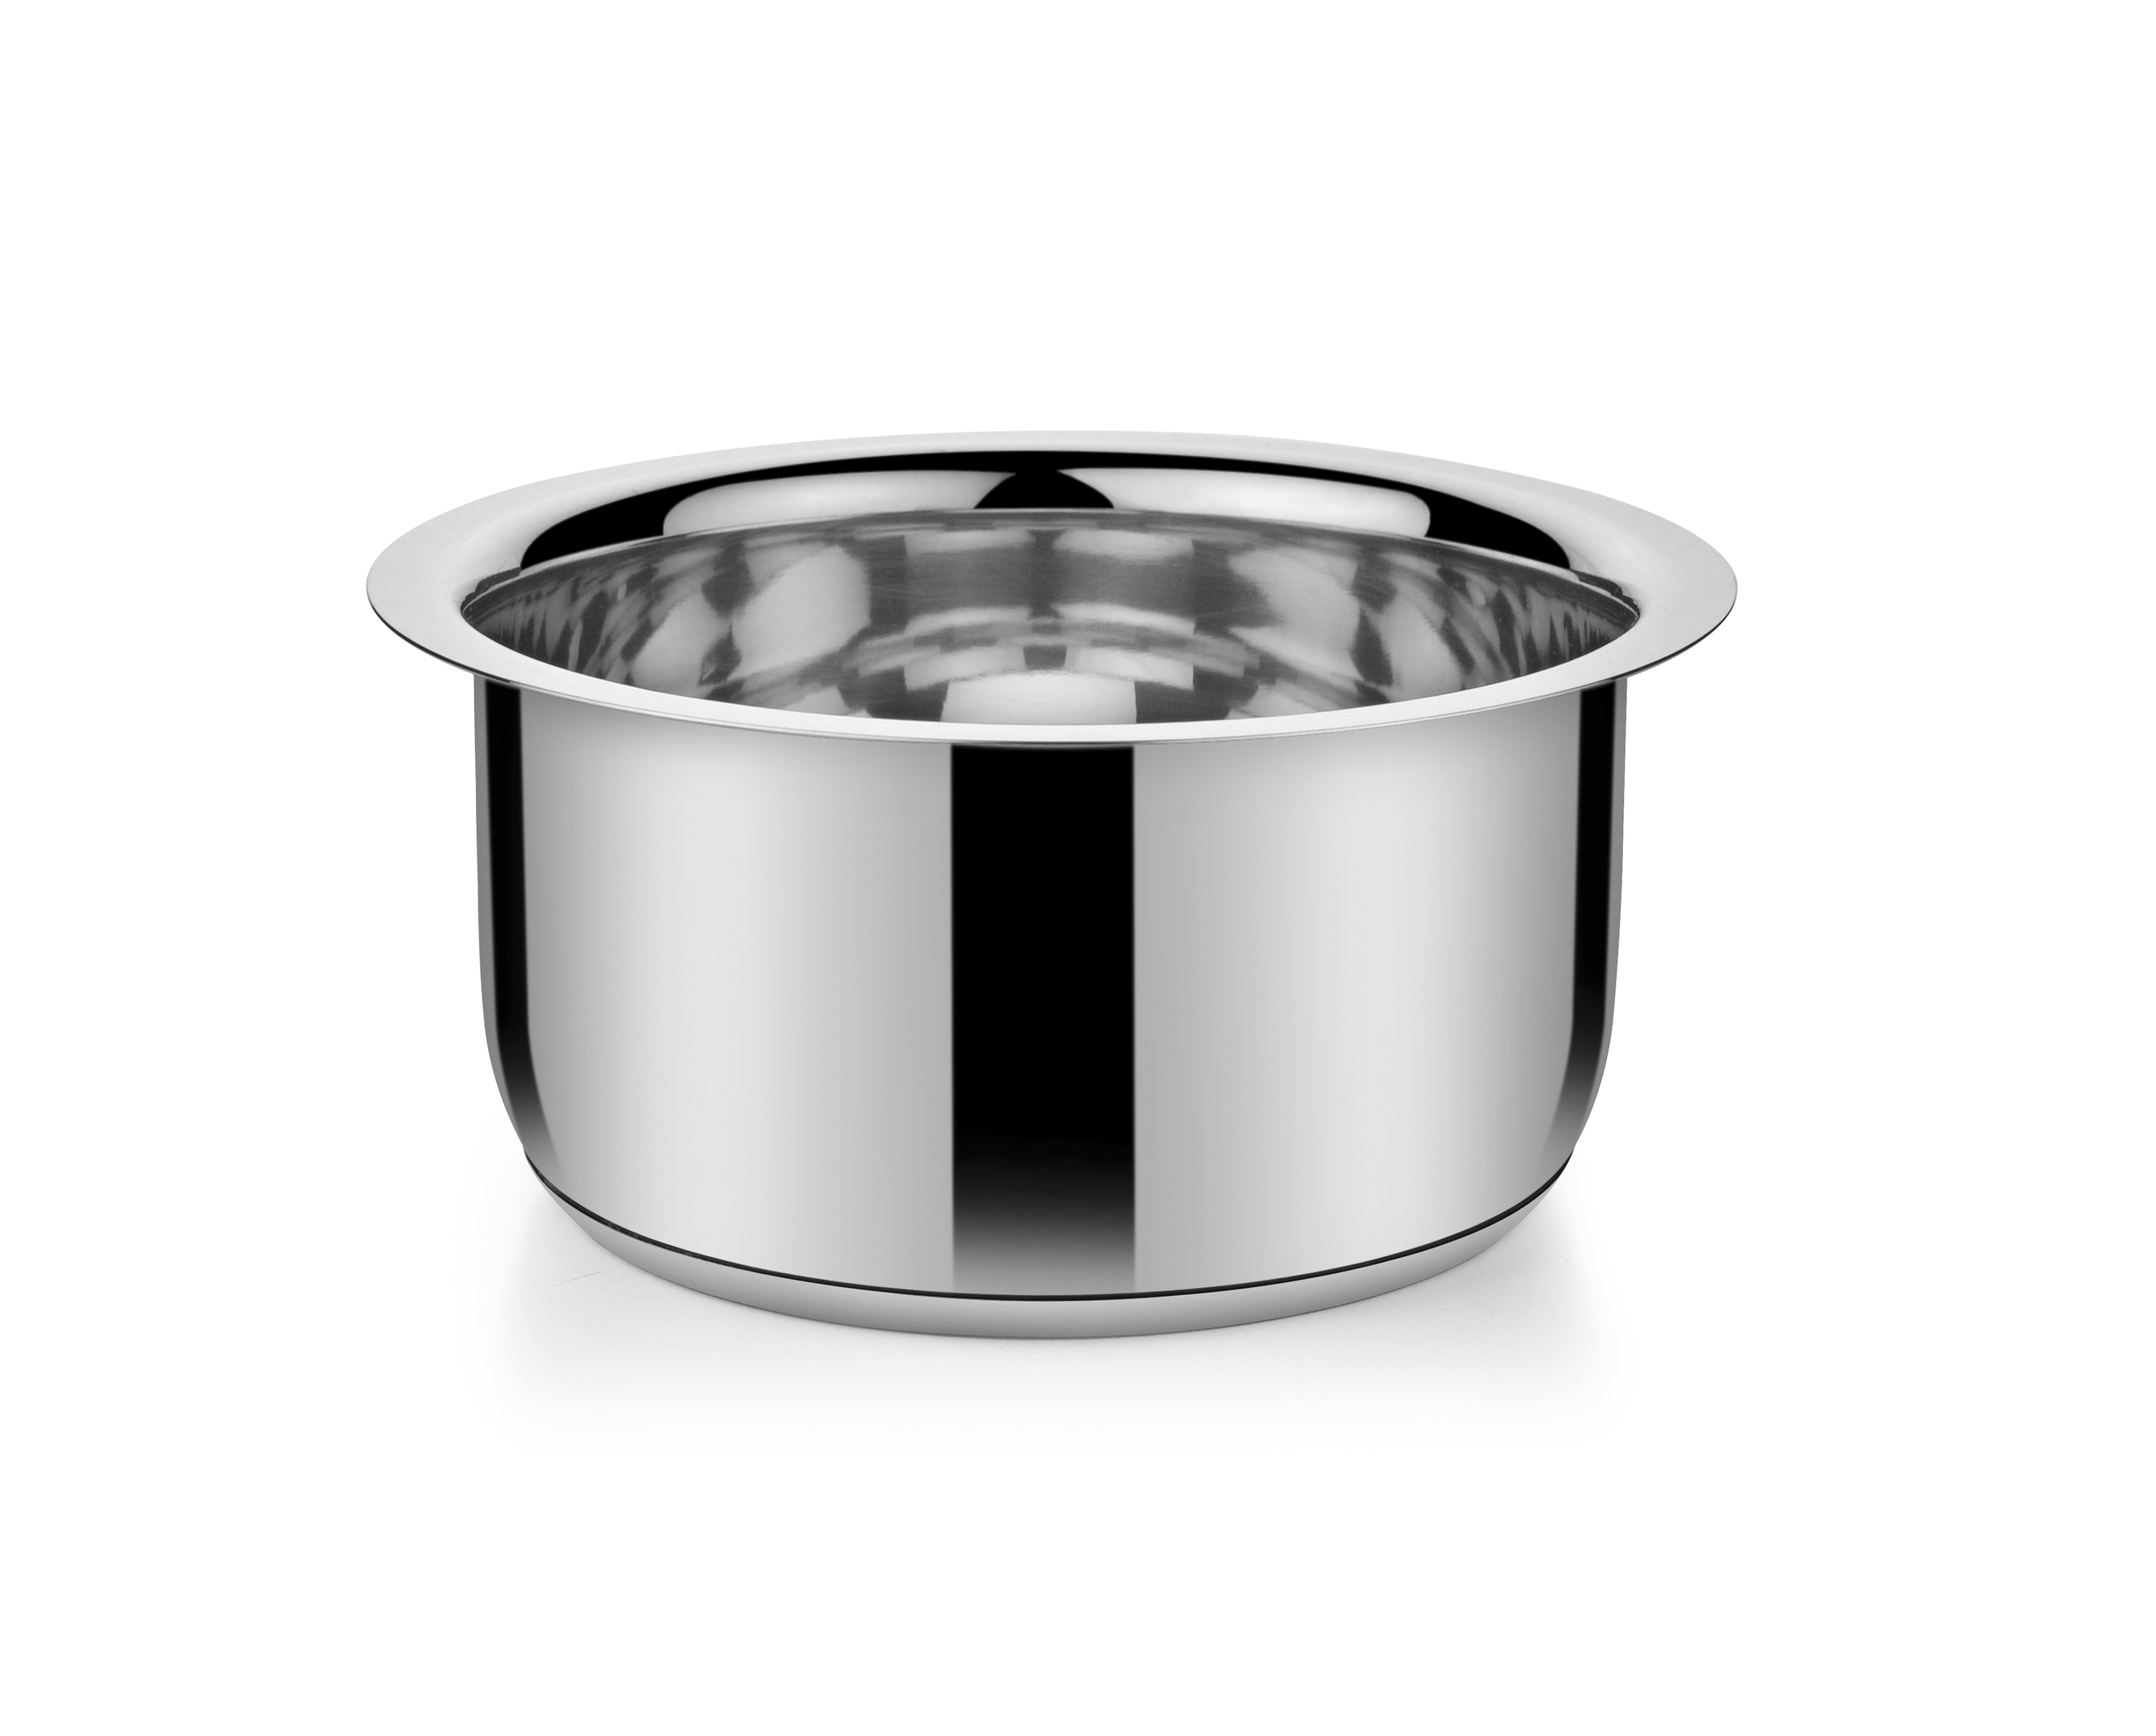 Bonita Stainless steel Sauce Pans in Stainless Steel Colour by Bonita